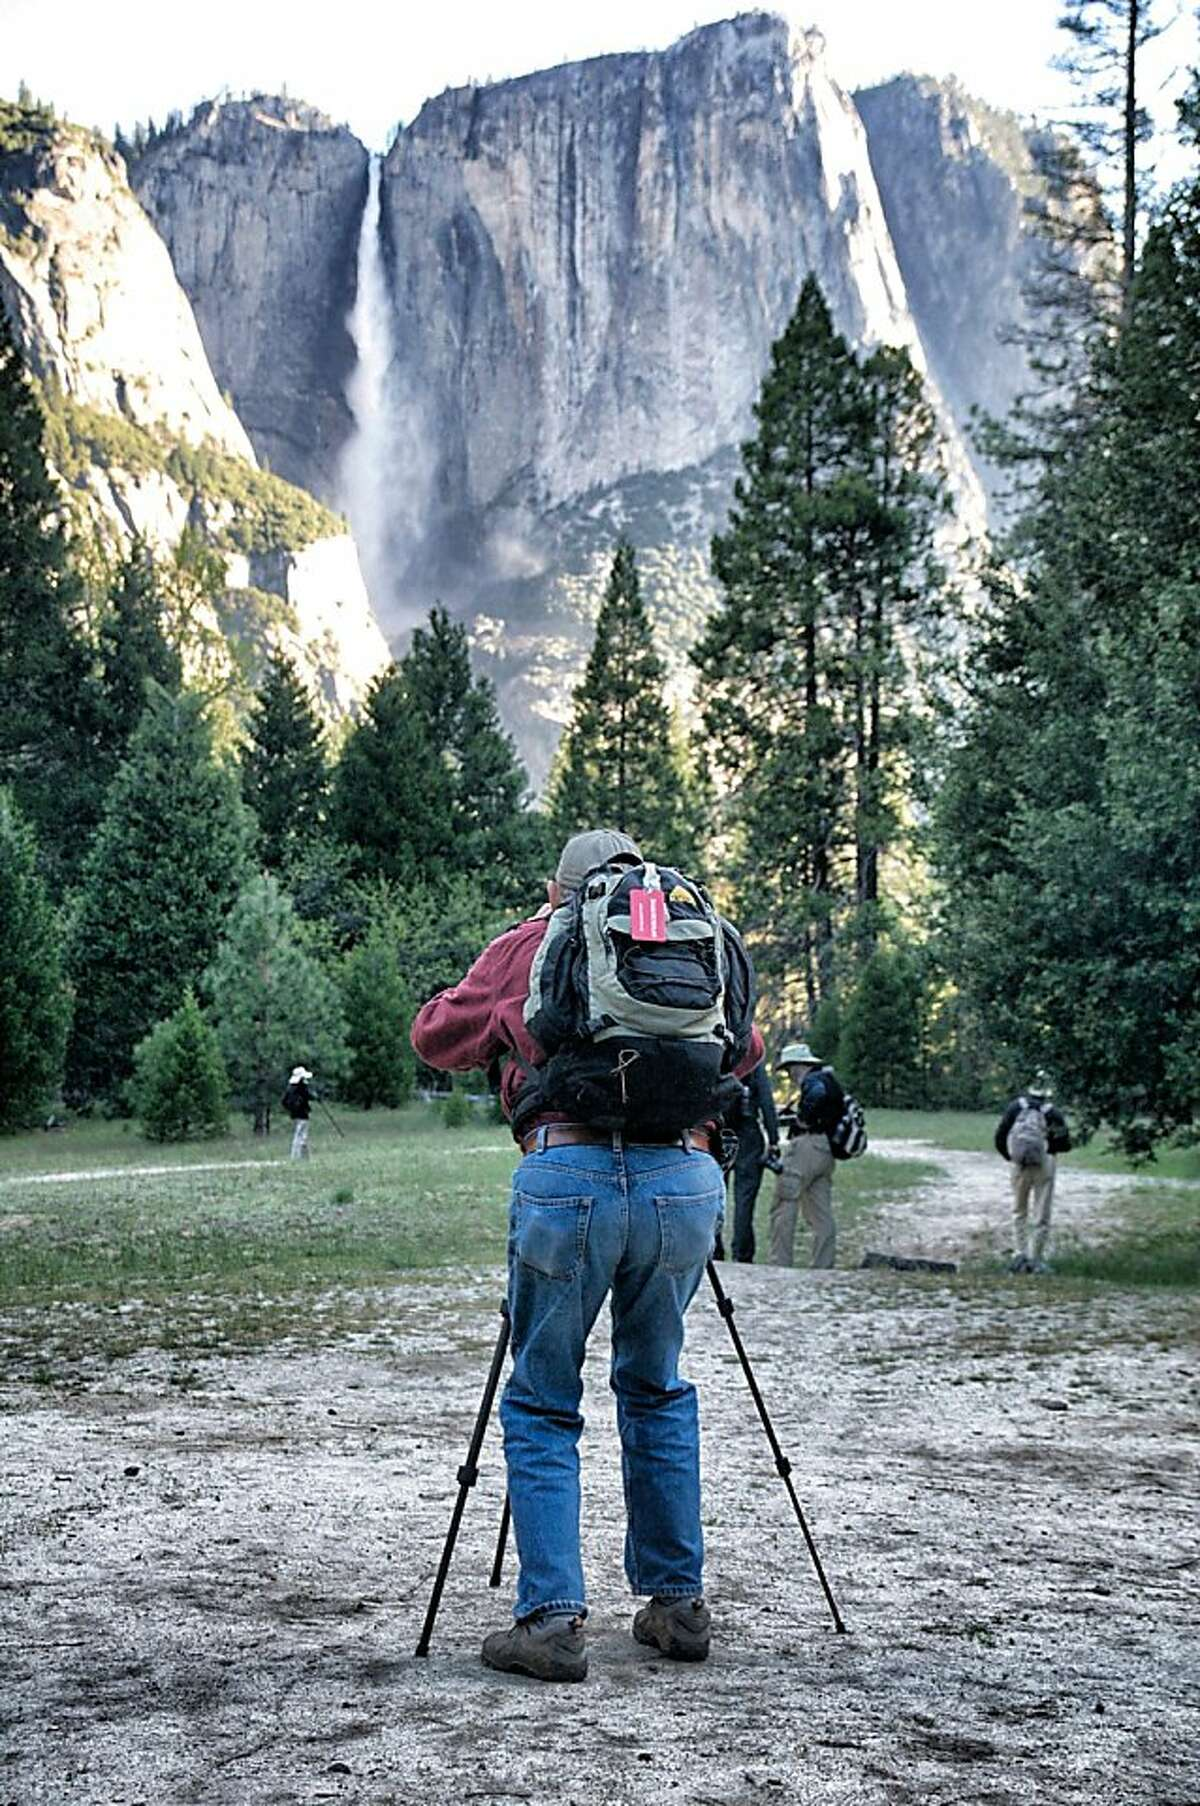 A Road Scholar participant takes aim at Yosemite Falls. Photo by John Flinn / Special to The Chronicle